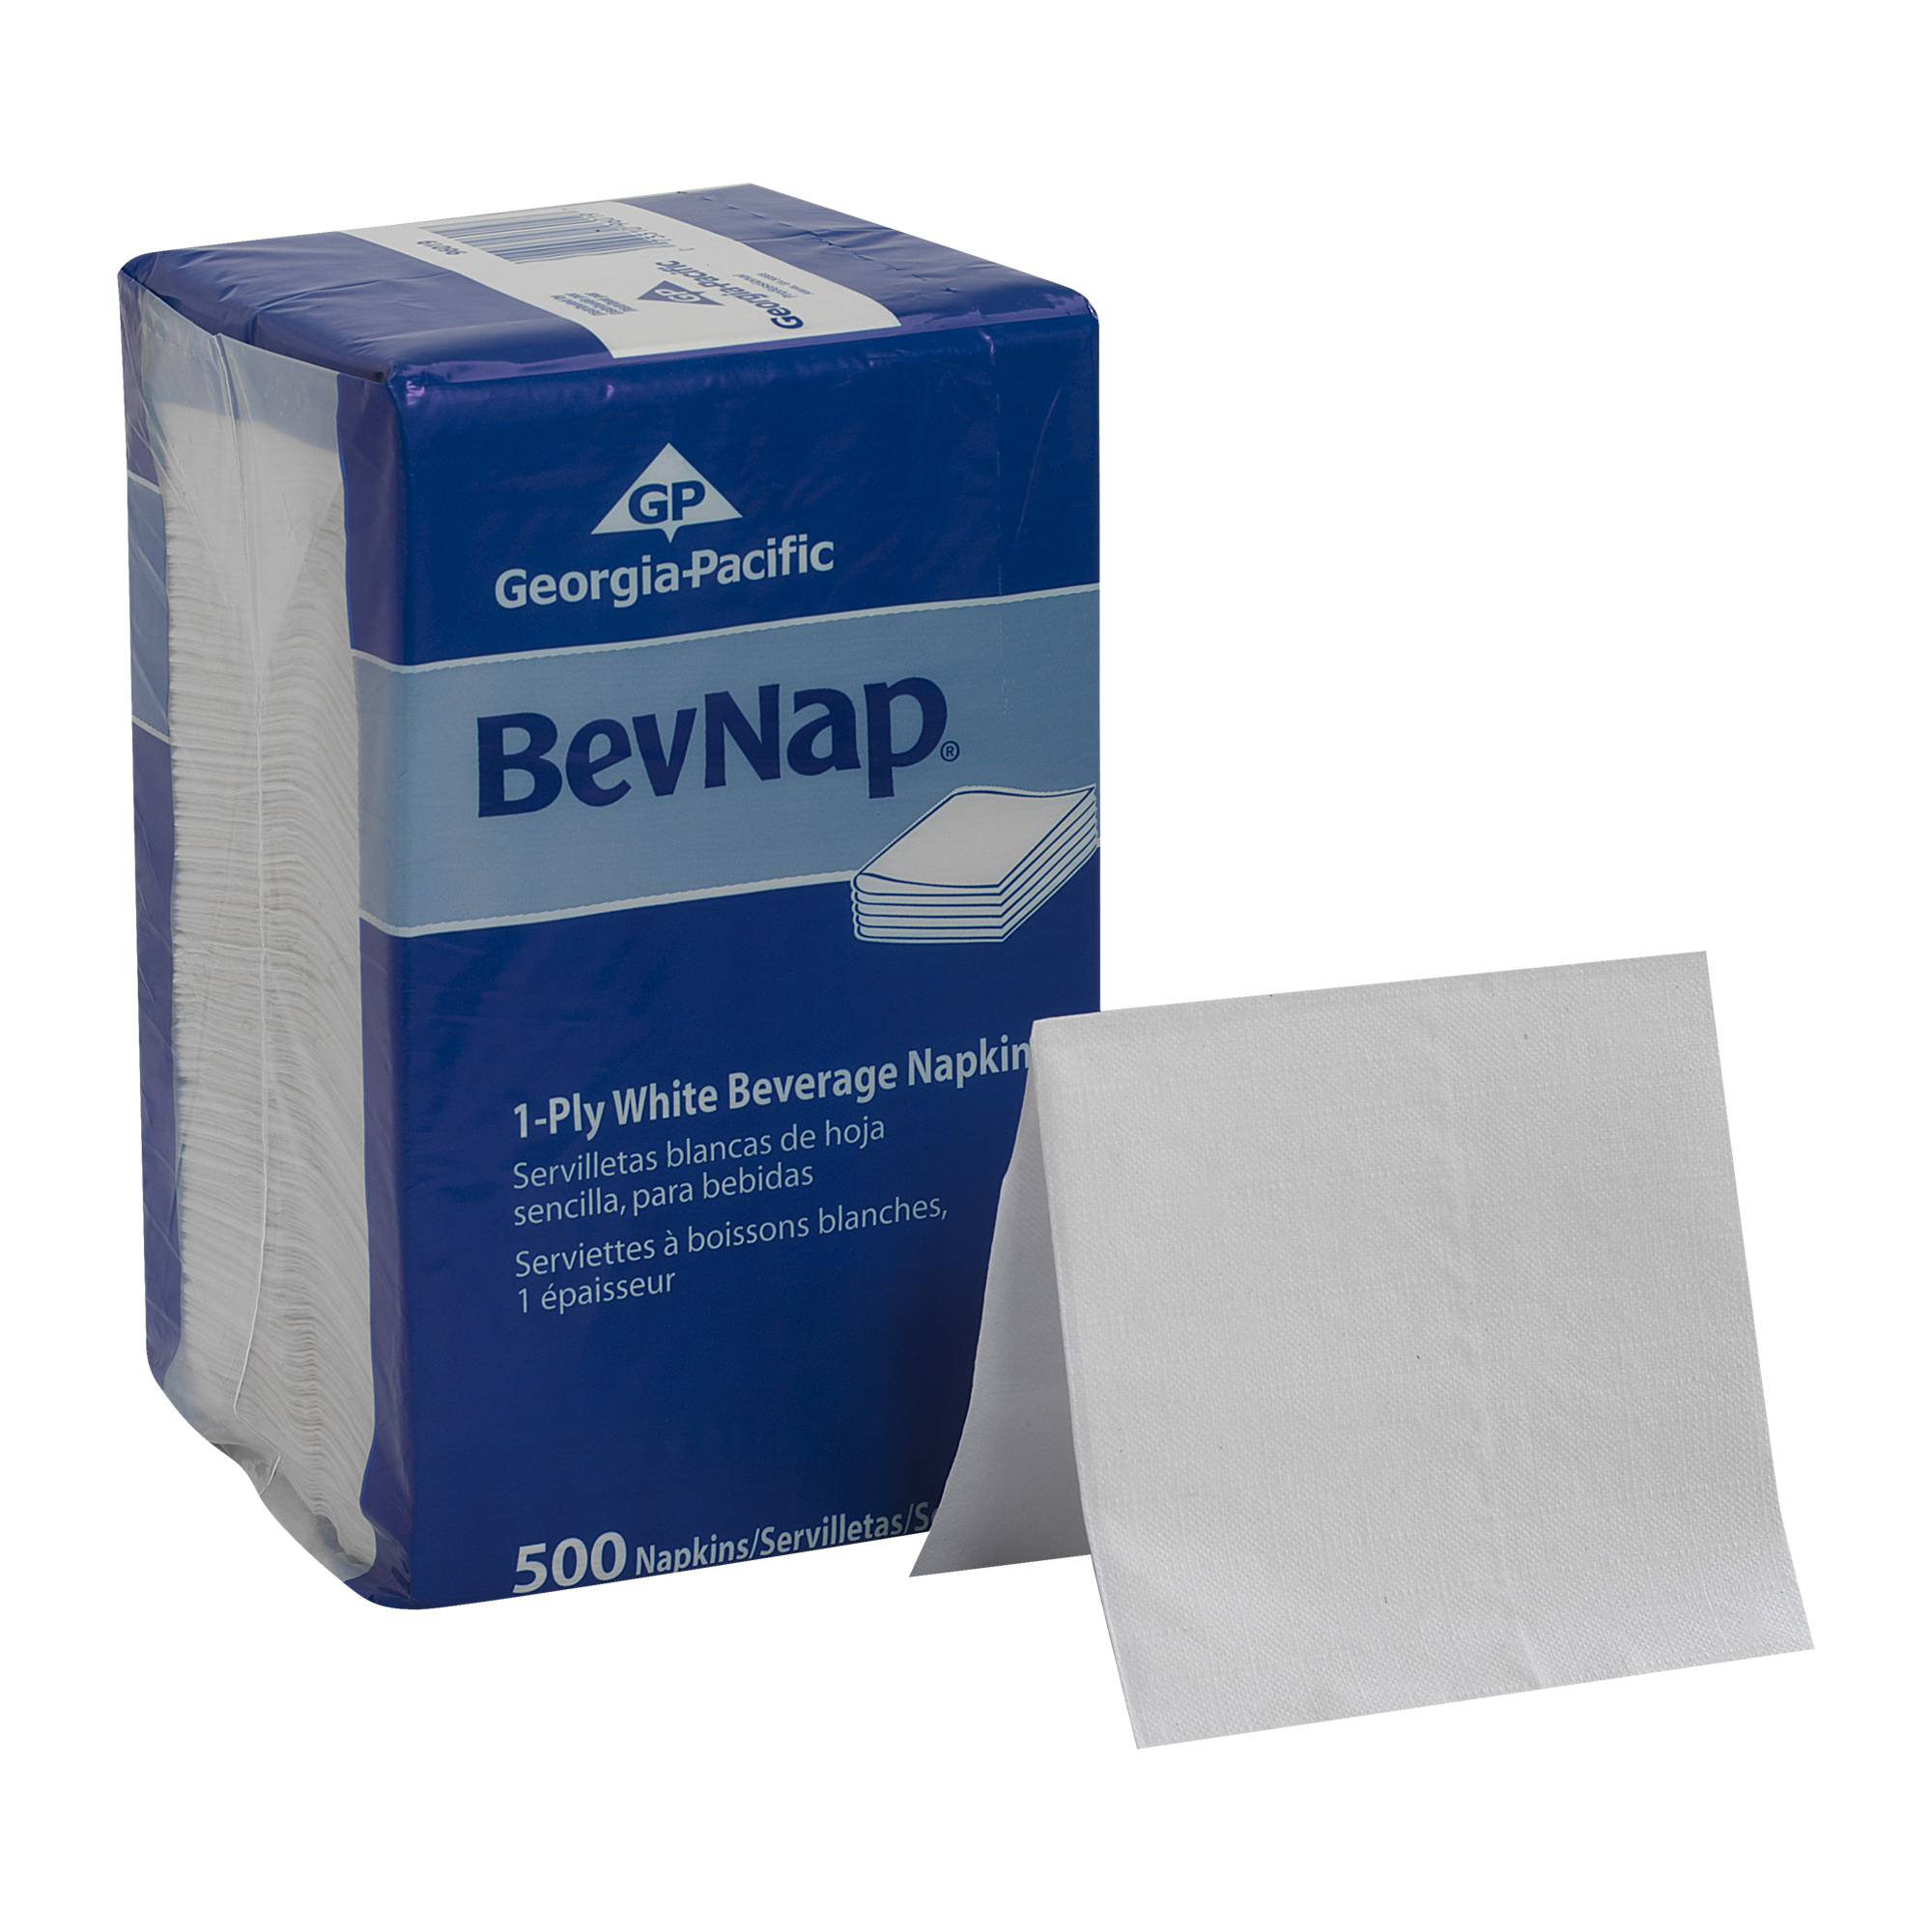 PicturesLogo/BEVERAGE NAPKINS.jpg